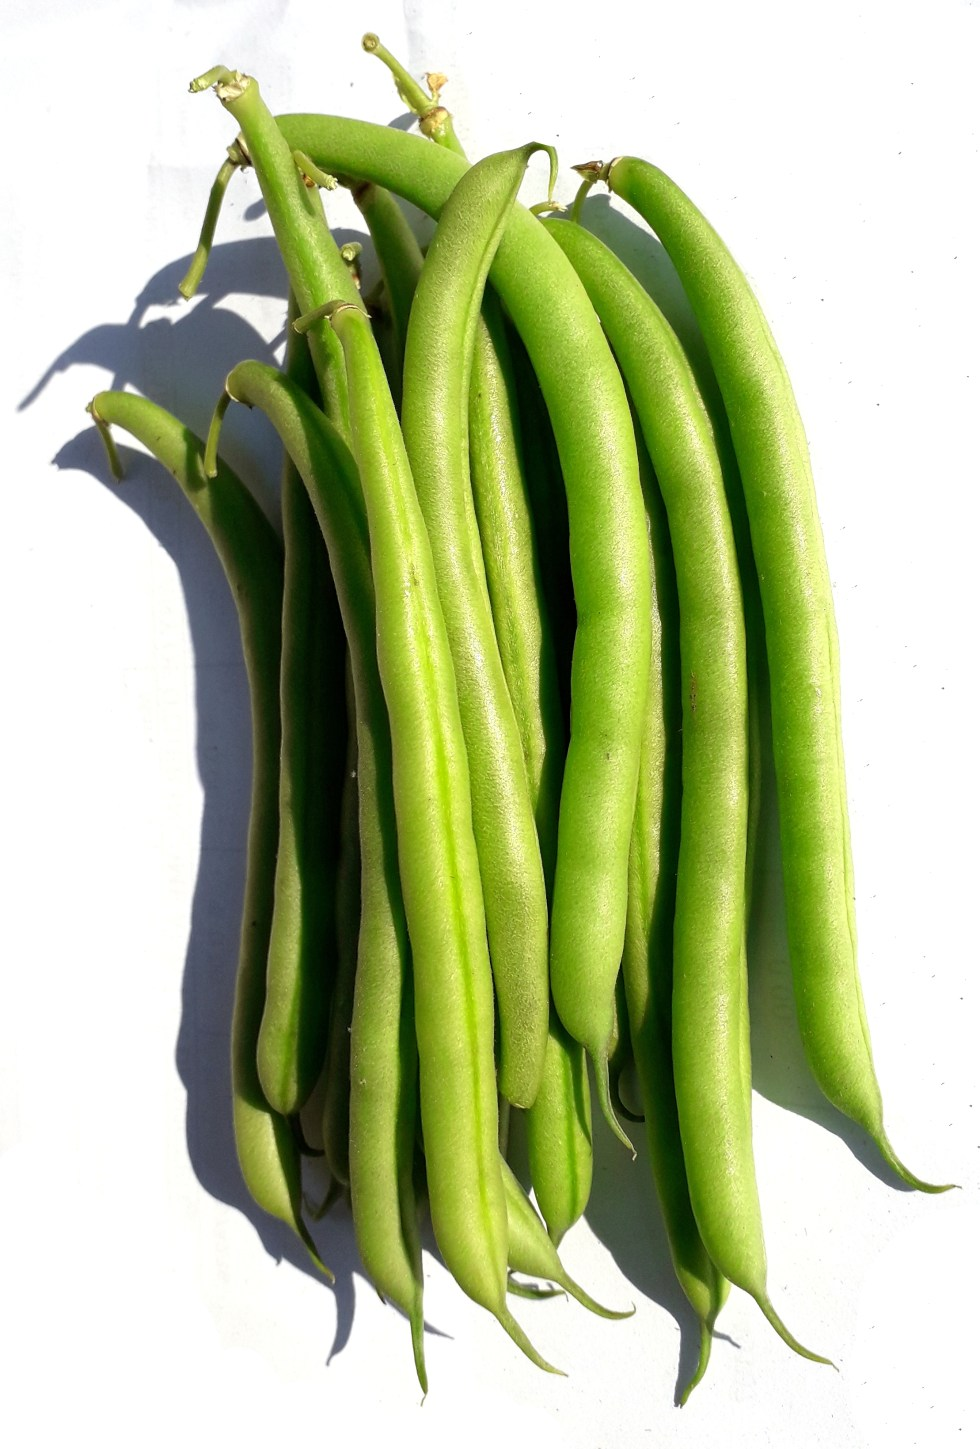 Some matured fresh green beans